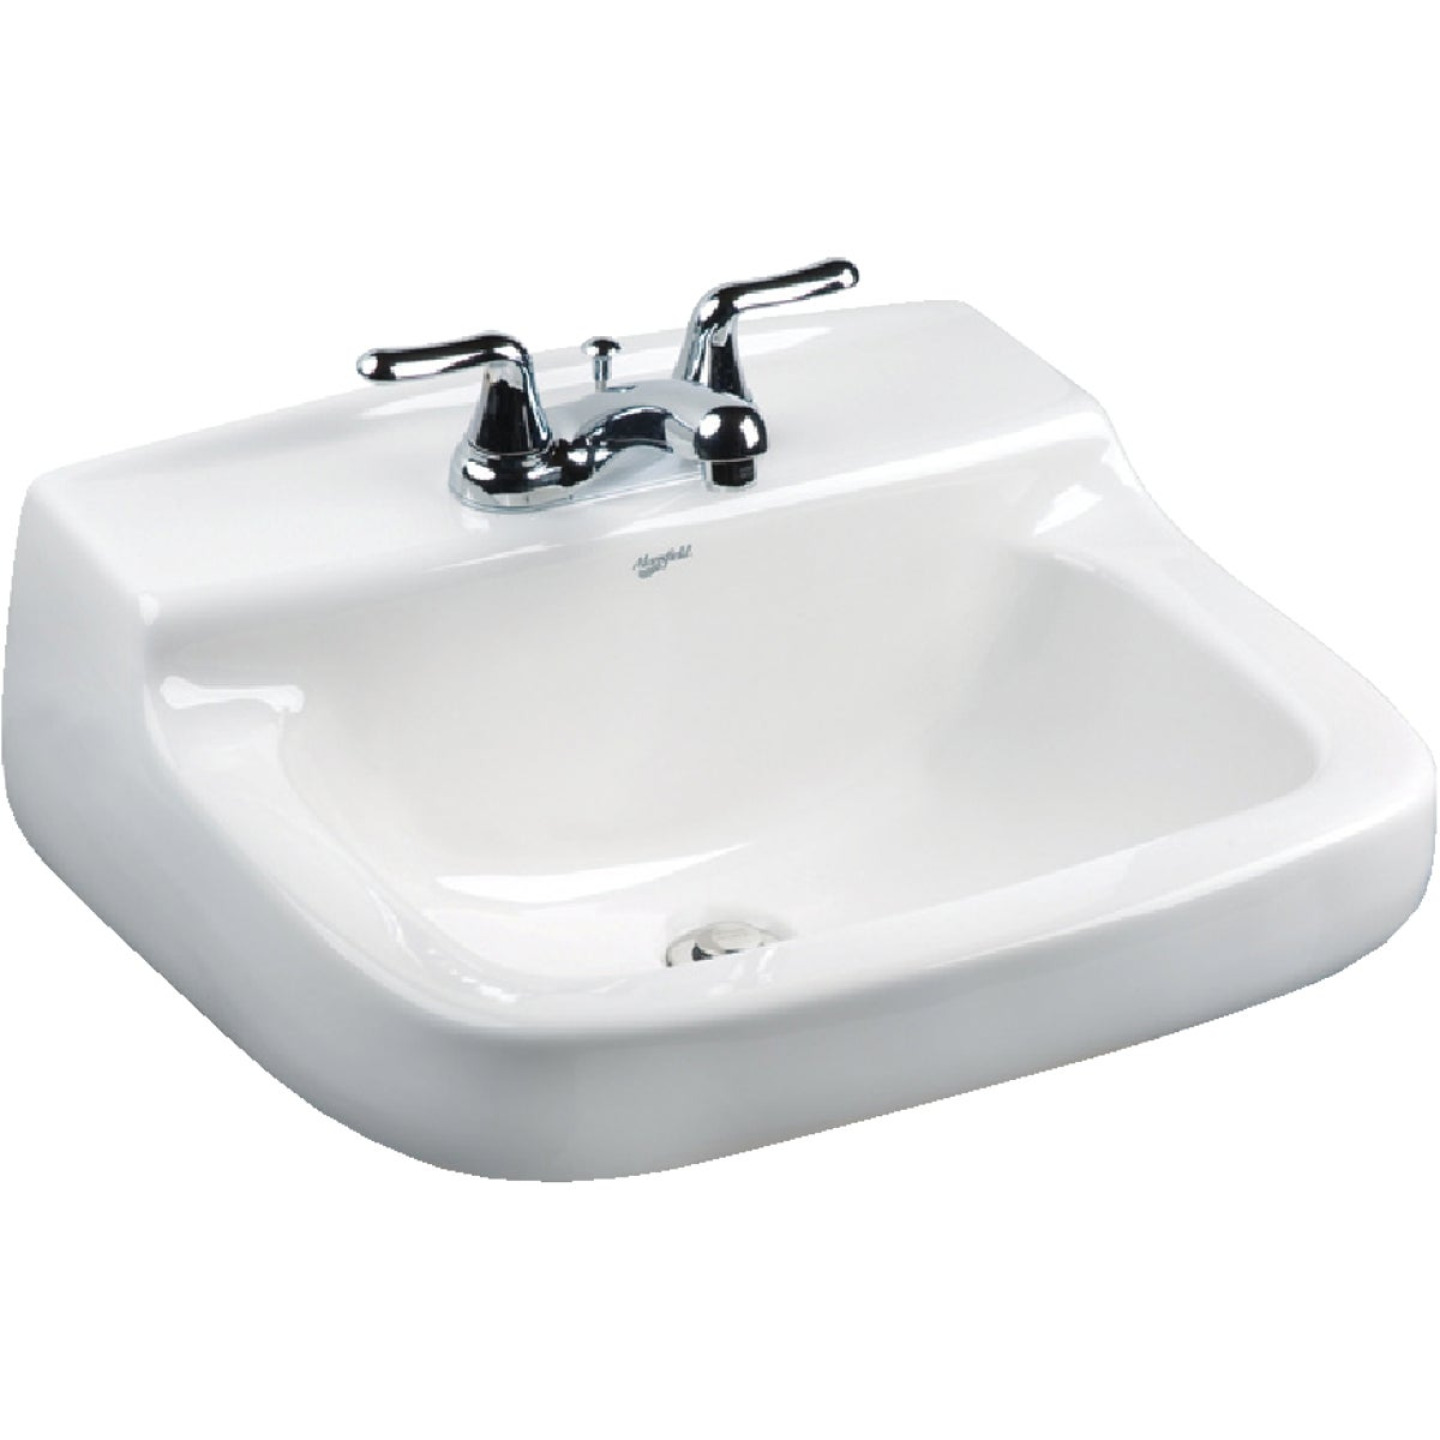 Mansfield Walnut Knoll Rectangular Wall Hung Bathroom Sink, White Image 1